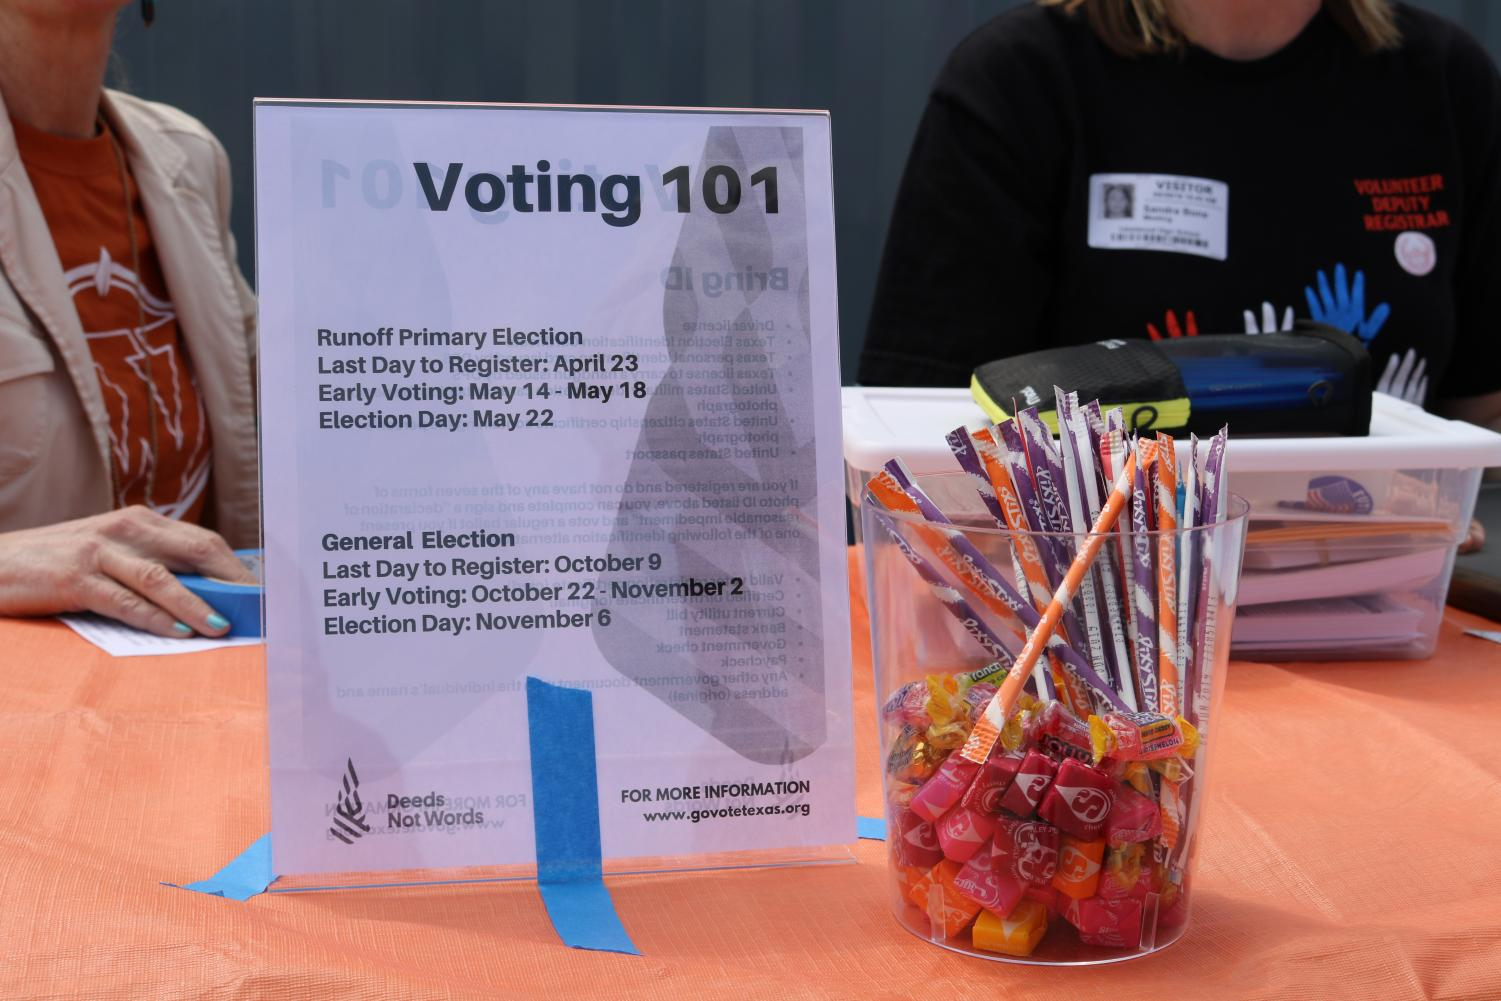 The+voter+registration+table+displays+signs+with+info.+